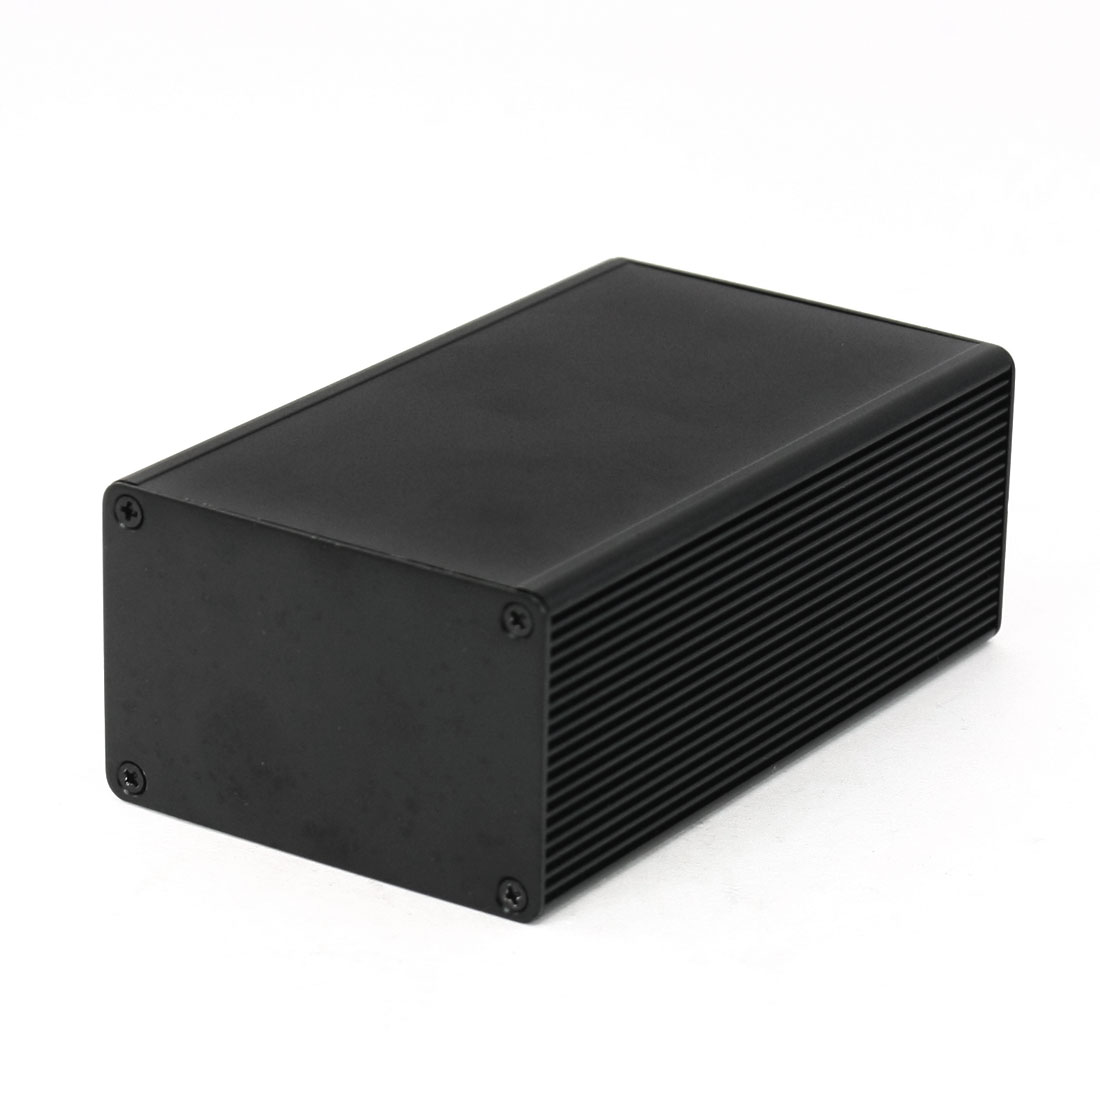 112mm x 66mm x 43mm Aluminum Enclosure Case DIY Junction Box Black